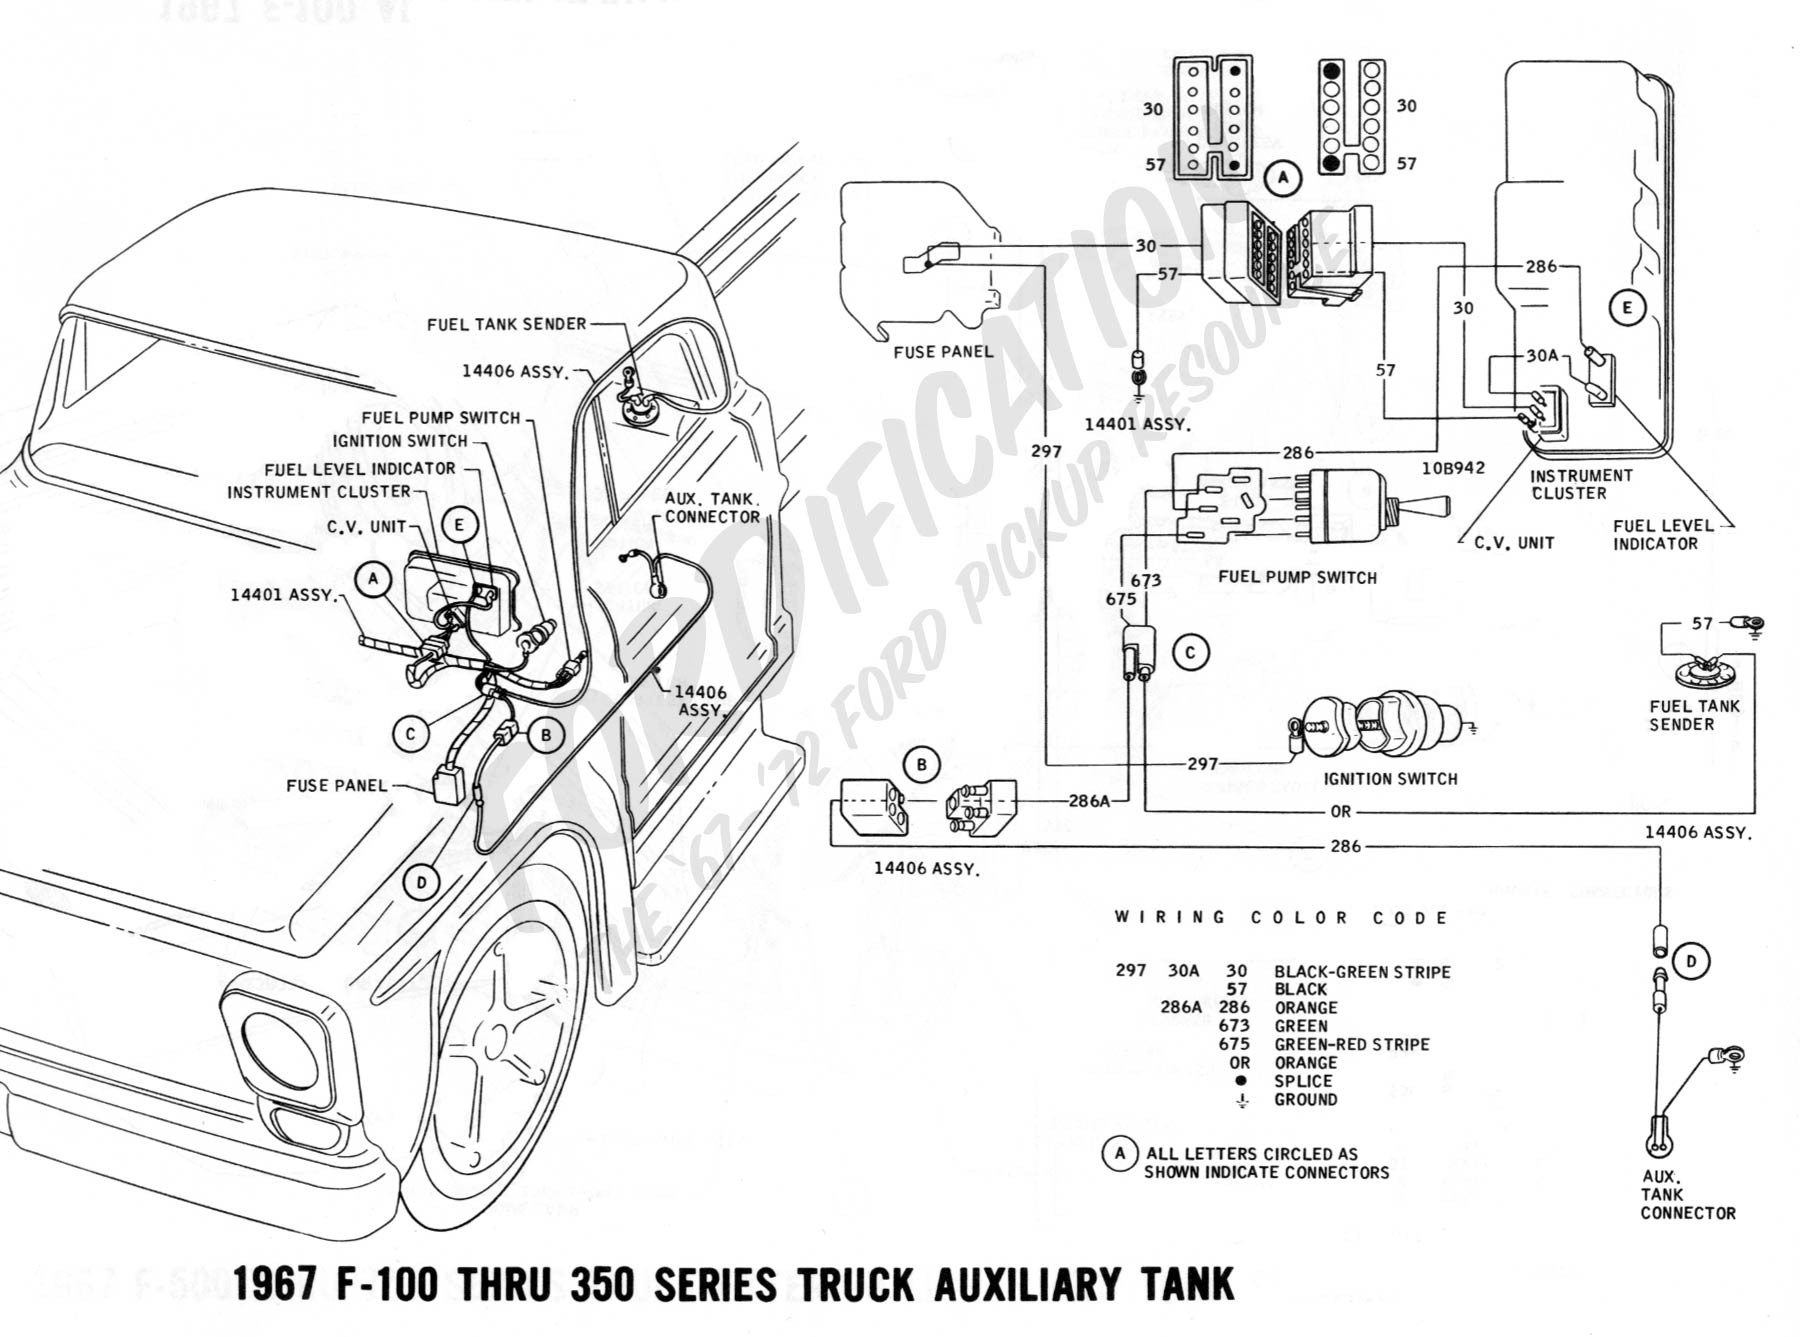 1992 ford f150 parts diagram 2006 mazda 6 bose subwoofer wiring my